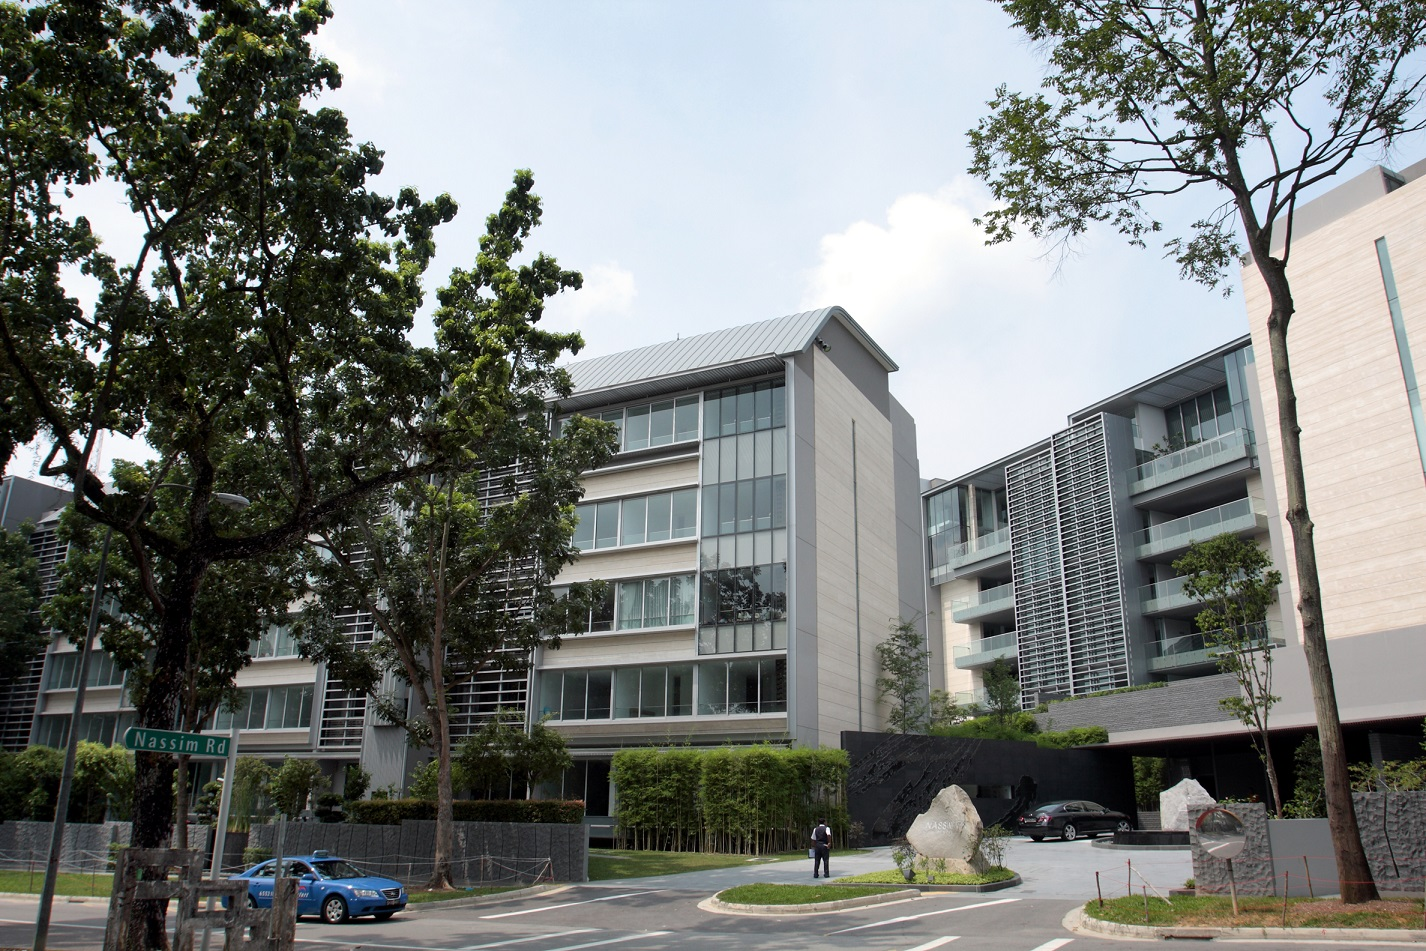 NASSIM PARK RESIDENCES - A 3,477 sq ft, four-bedroom unit at Nassim Park Residences change hands for $11.85 million ($3,408 psf), according to a caveat lodged on Aug 14 (Photo: Samuel Isaac Chua/EdgeProp Singapore) - EDGEPROP SINGAPORE